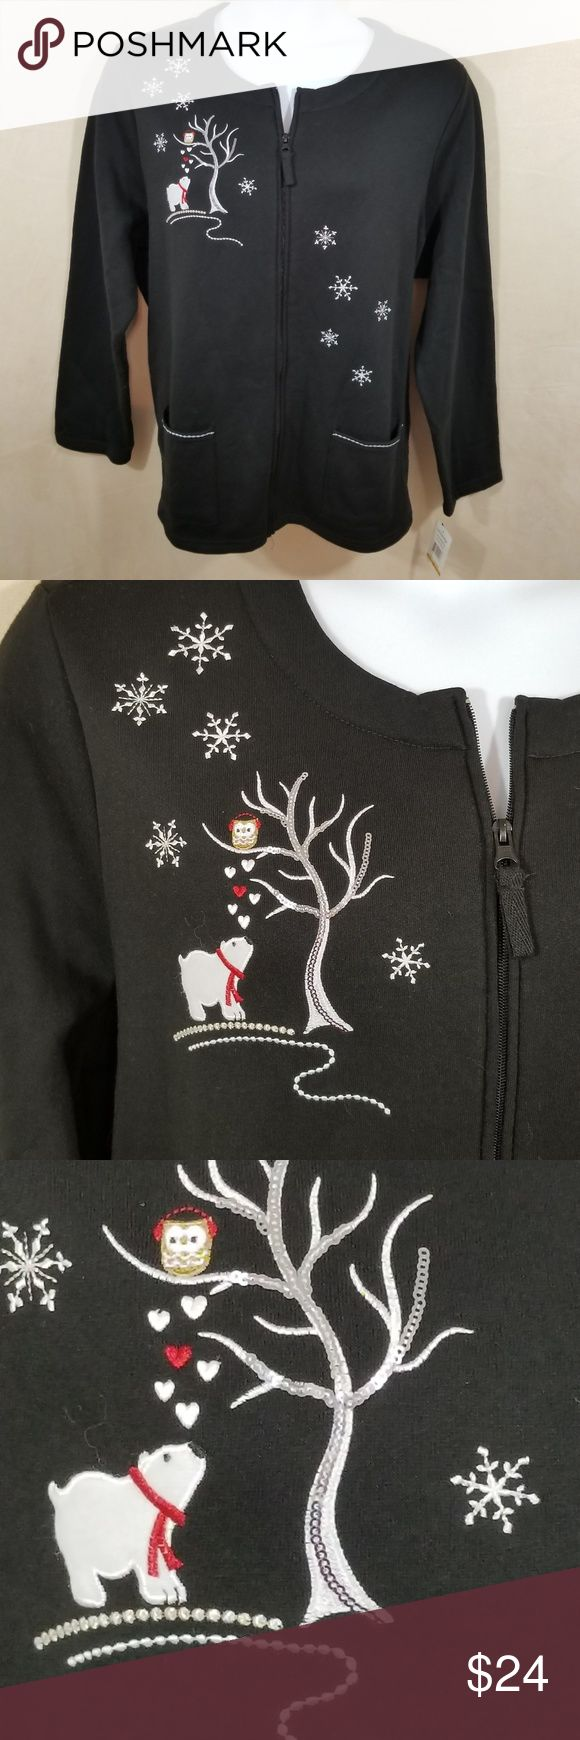 """Breckinridge Fleece Cardigan w/Bear & Owl- 3X -NWT Brand new Breckinridge black fleece cardigan.  Perfect for the season.  Adorable polar bear and owl embroidery with silver/white snowflakes as well.  The tree is a combination of sequins and embroidery.  Two front patch pockets trimmed with silver metallic embroidery.  Zip front.  Plain back. Fabric is 60% Cotton/40% Polyester.  New with tags.  Approximate measurements flat:   Chest: 27"""" (54"""") Sleeves: 26"""" Length: 28"""" Breckenridge Sweaters…"""